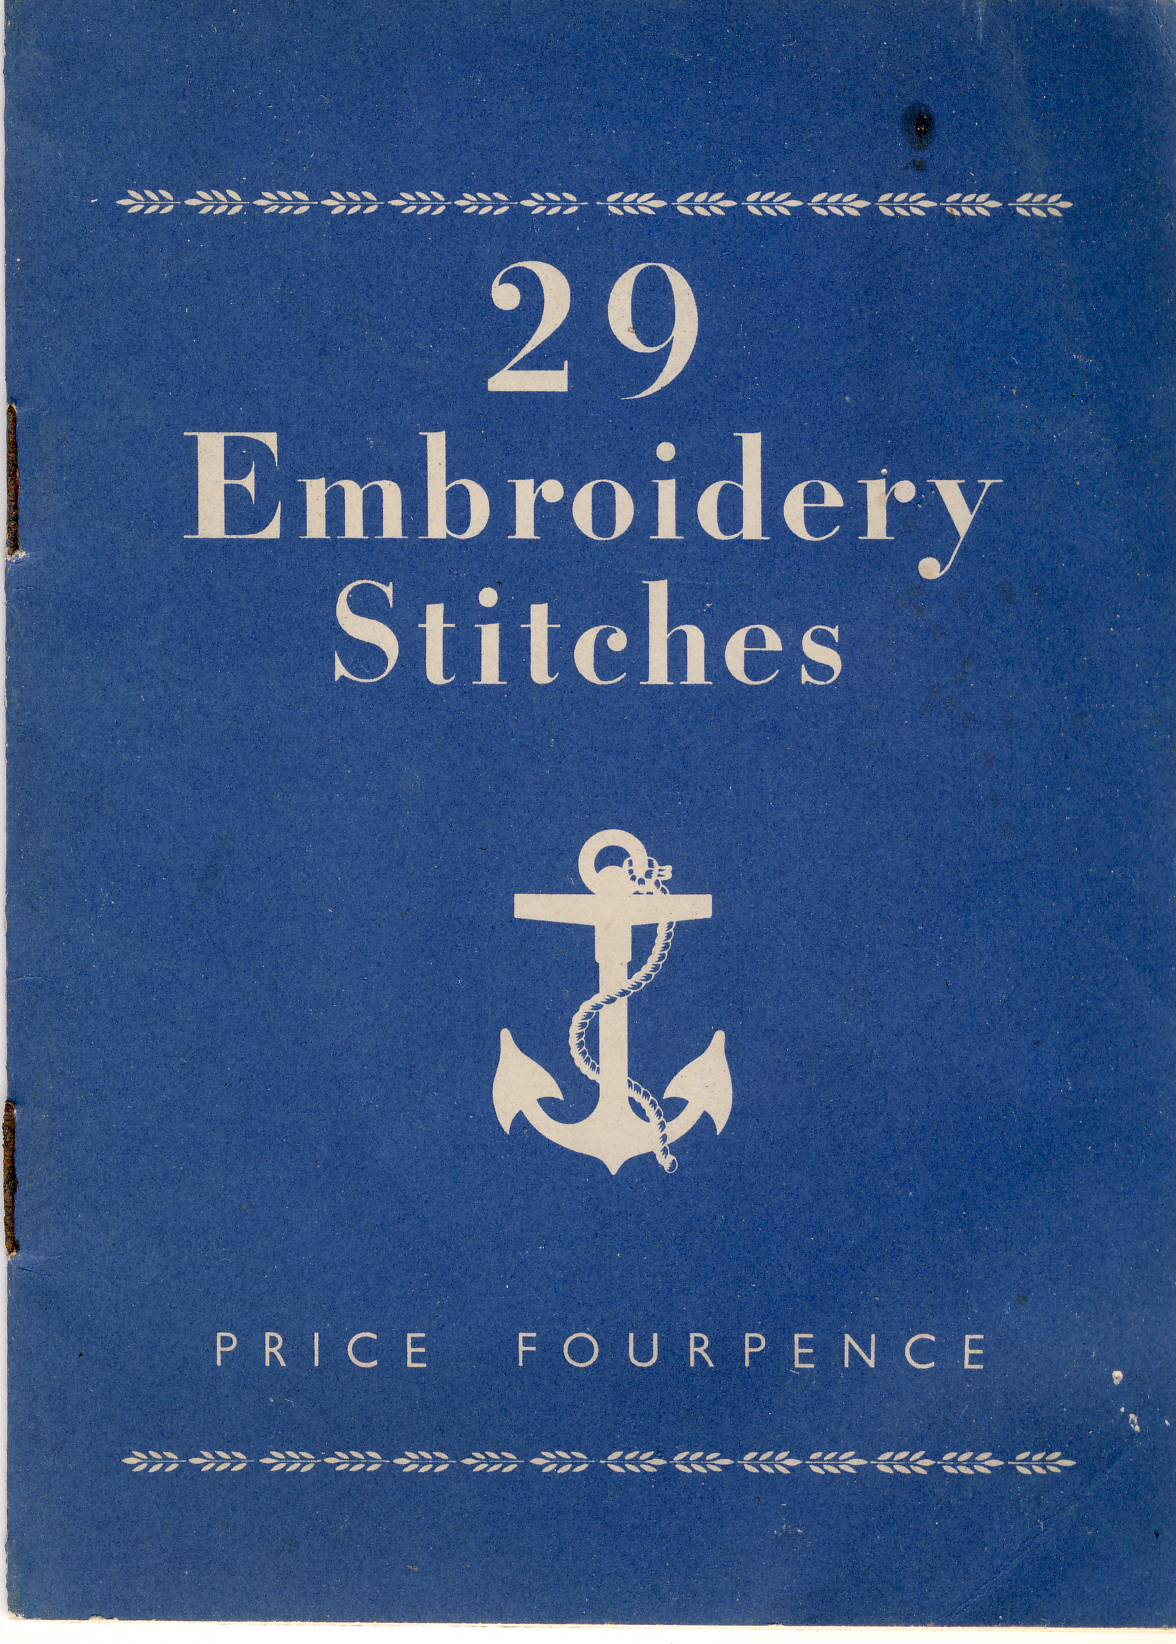 Vintage 29 Embroidery Stitches booklet measures approx 13cm x 10cm ref101634 Threads mentioned in the chart are from the ranges of Clarks Anchor Embroidery Threads - pre-owned booklet in good read condition. Some marks and staples rusting. Art. No. Q425 - D1 reprint.